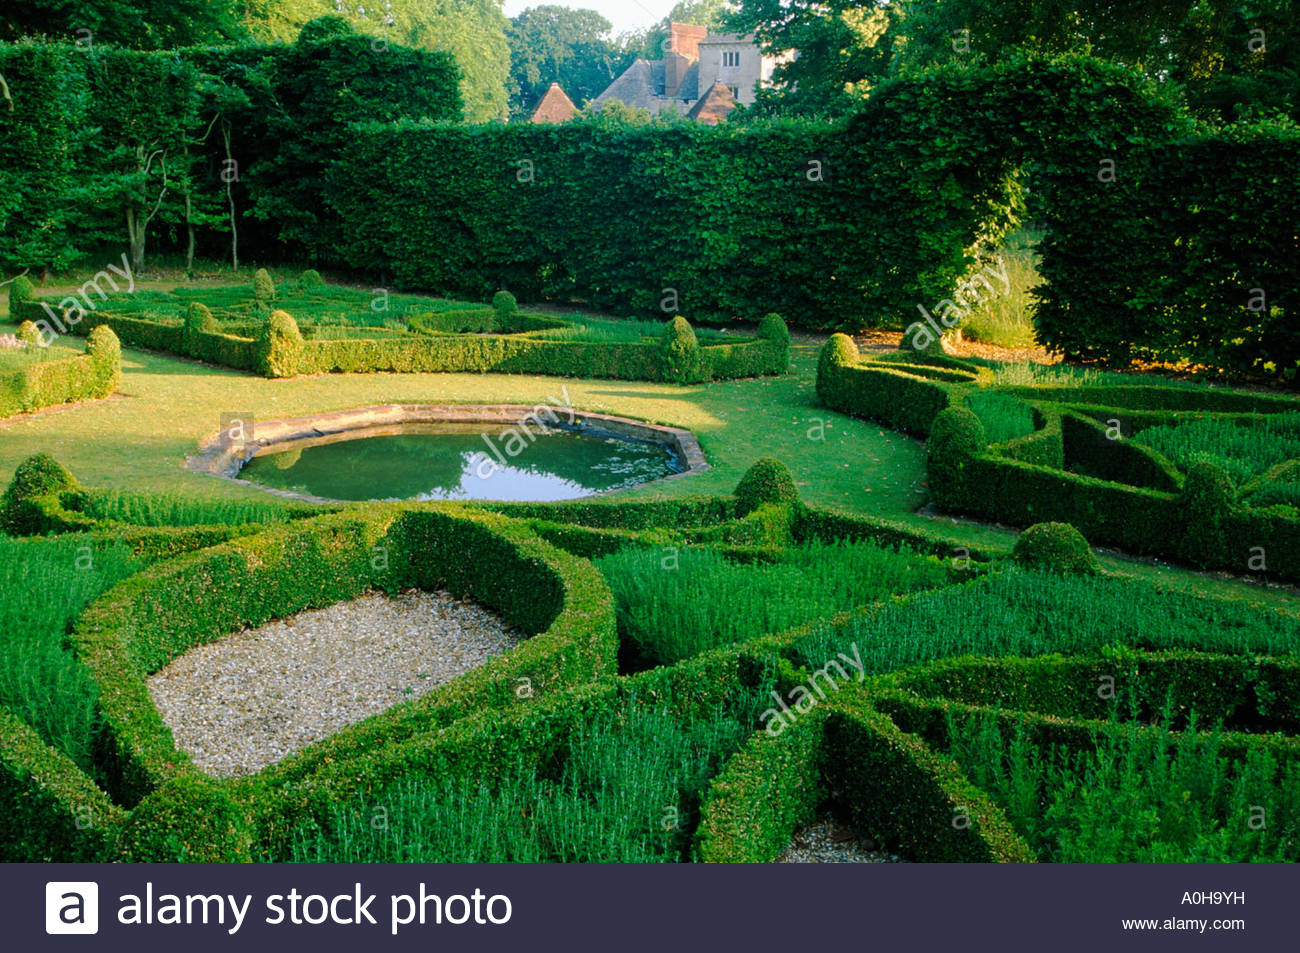 Cranbourne Manor Dorset The Green Garden Enclosed Knot garden with low boxwood hedging and formal octagonal pond Beech hedge - Stock Image